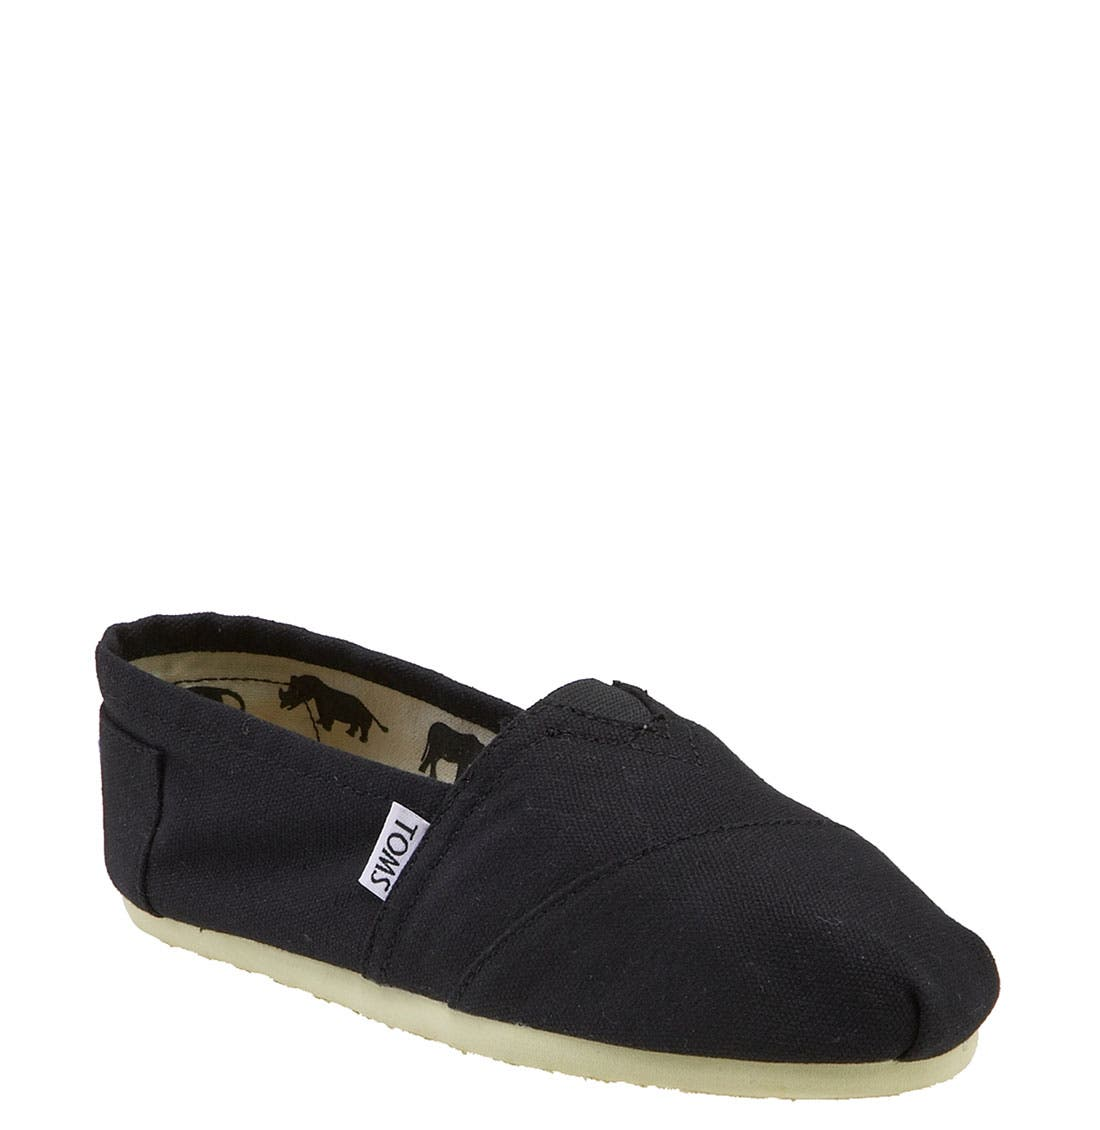 Toms Classic Canvas Slip-On